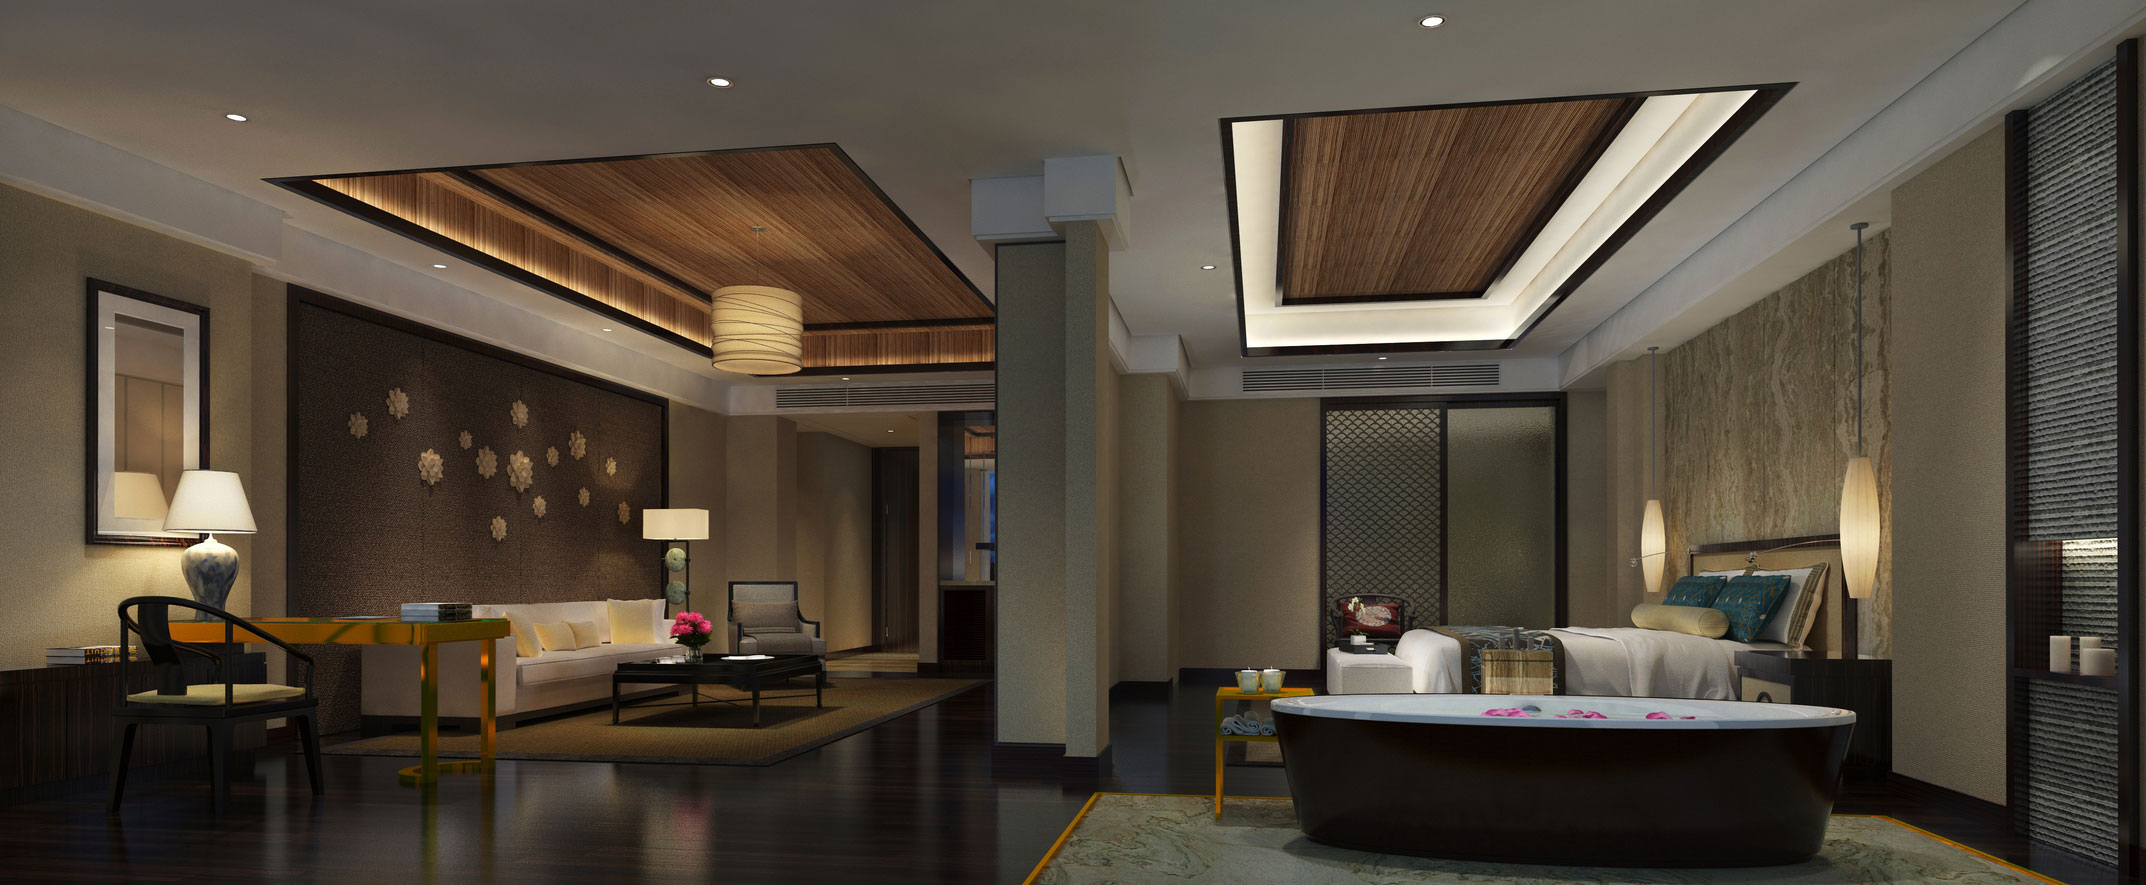 New Lifestyle Hotels Headed To Los Angeles ParkWest General - General contractor los angeles ca